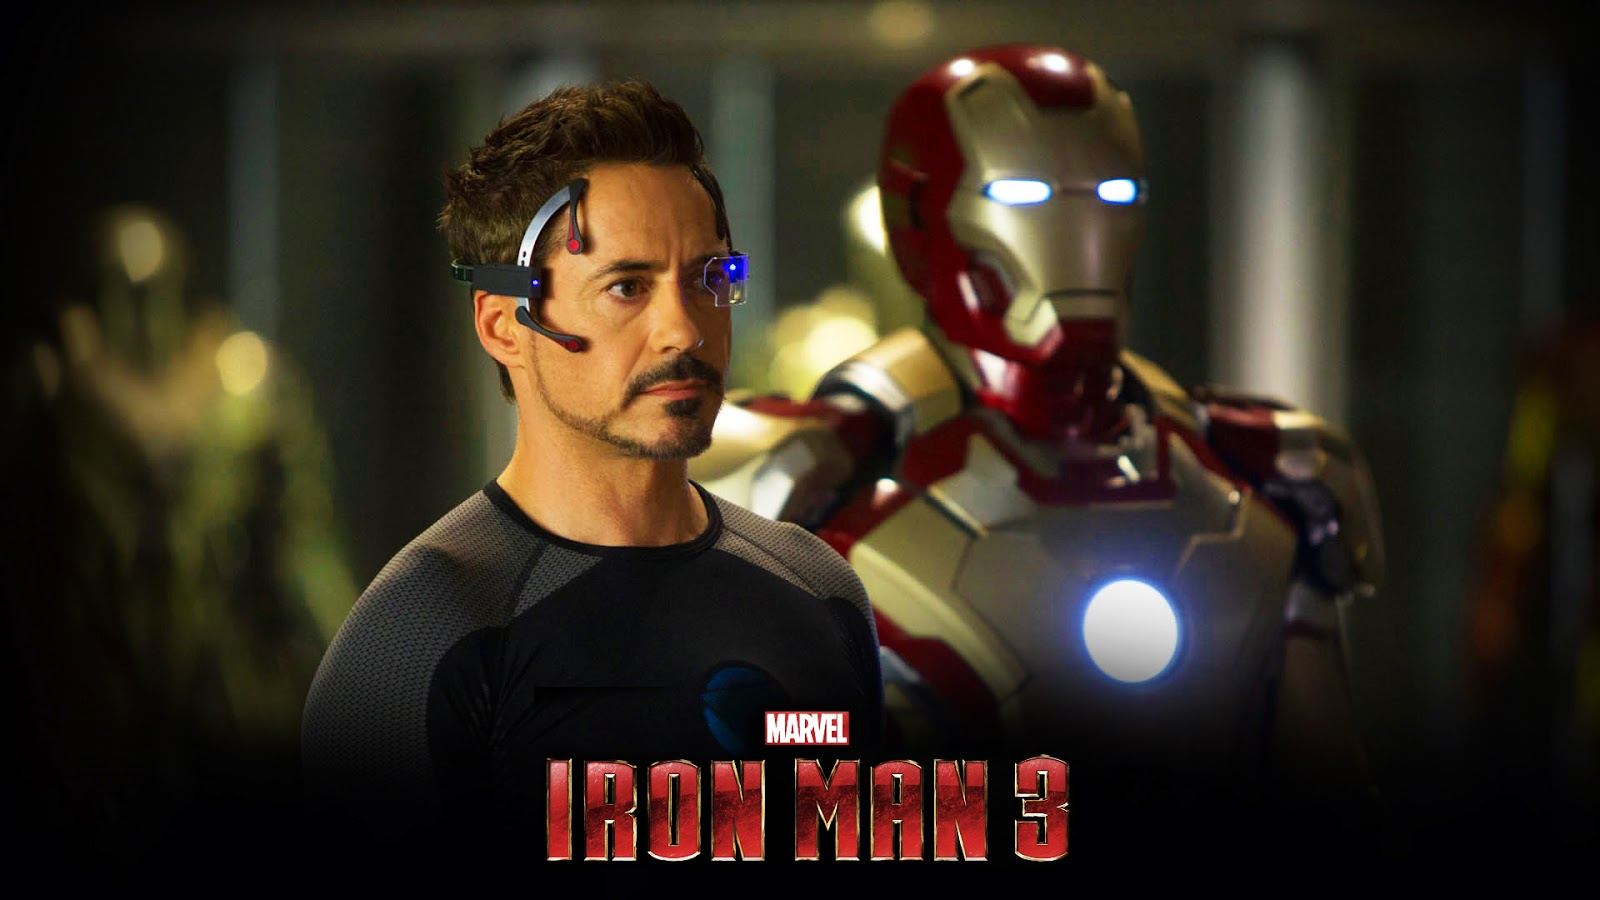 paulbarford heritage the ruth: iron man 3 movie wallpapers